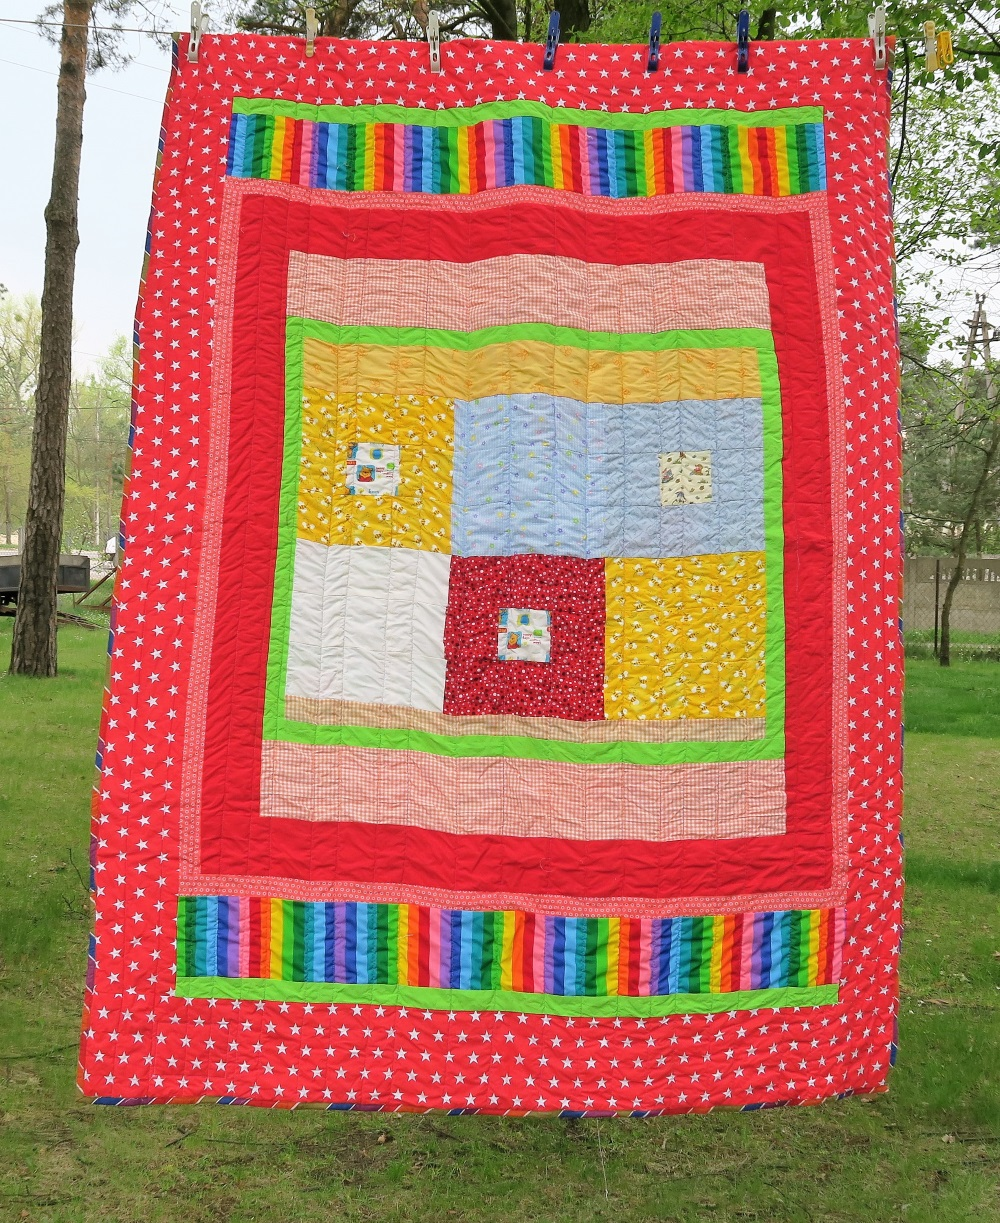 51 A friend from AZ, USA made the center. I added the borders to make it a twin size.